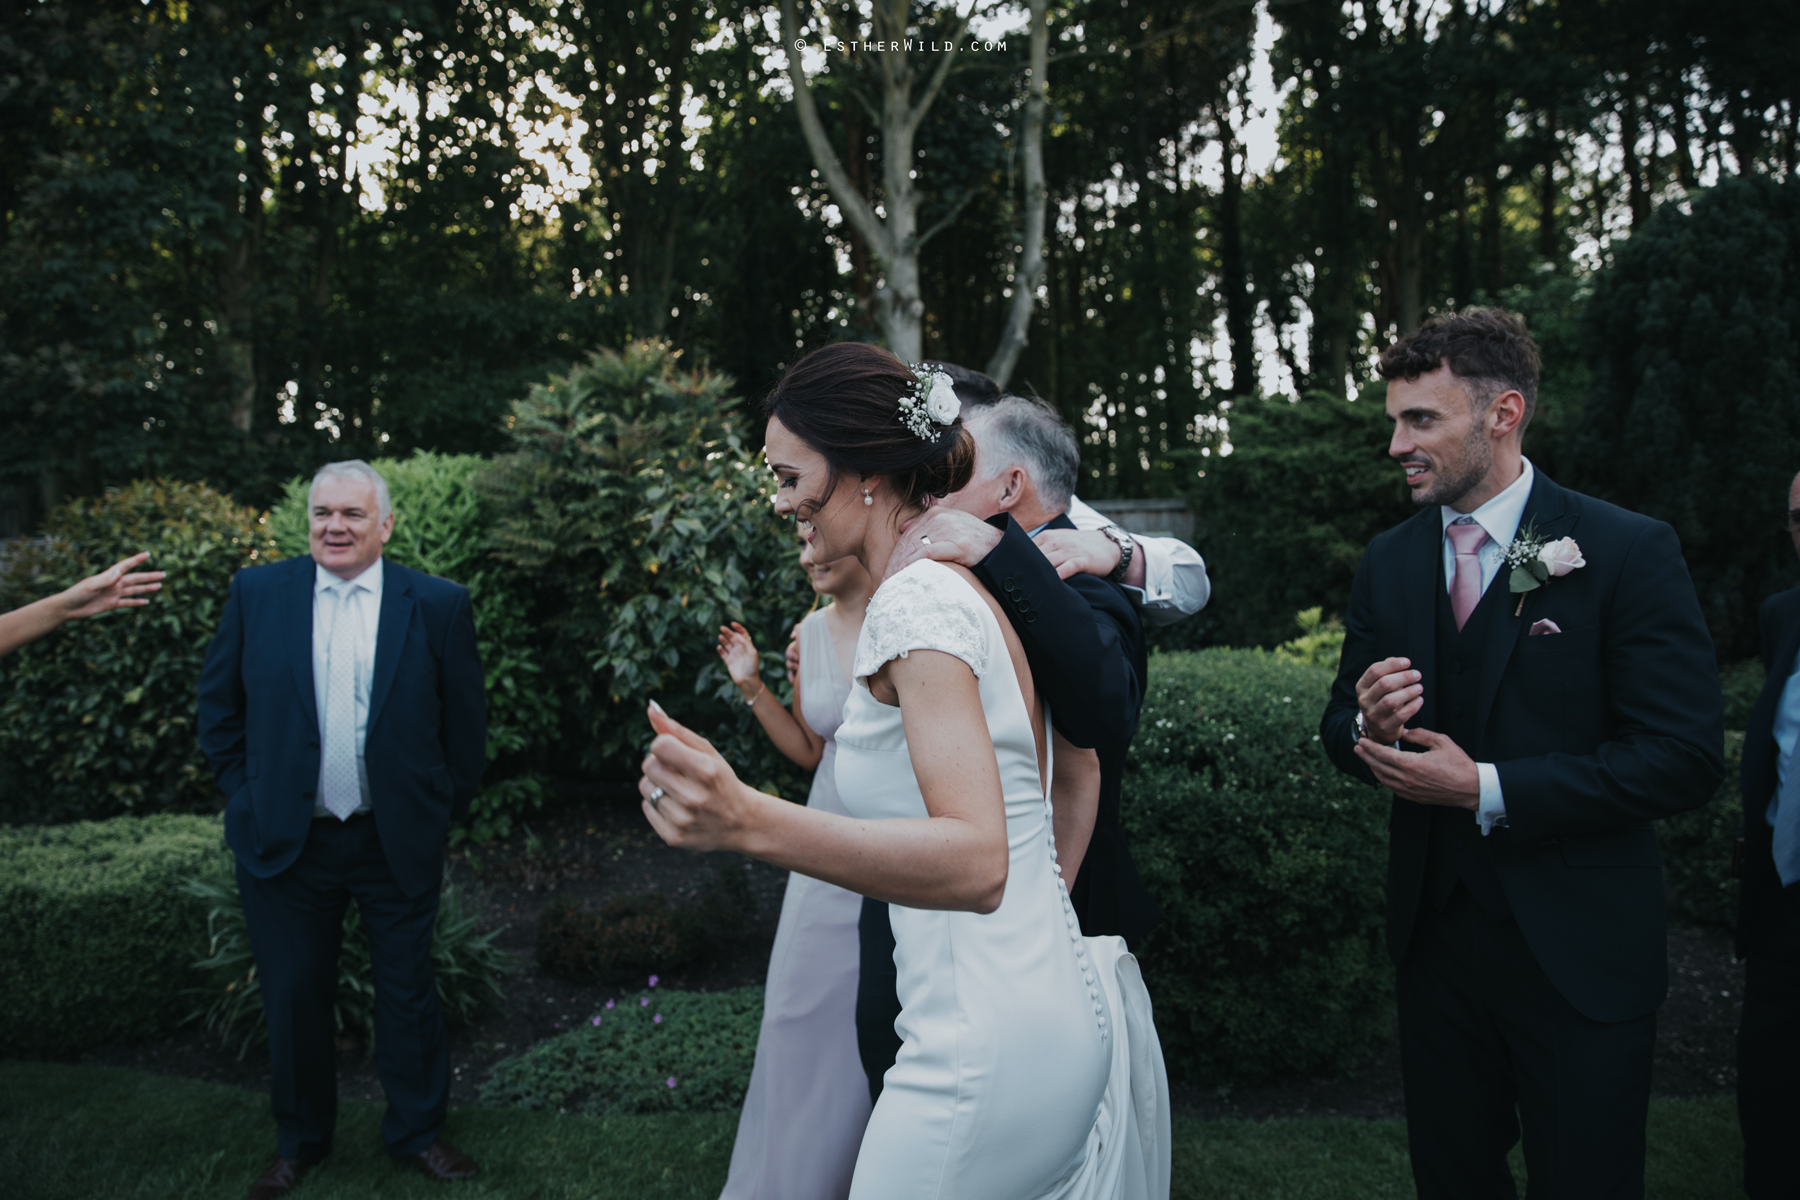 Wootton_Wedding_Copyright_Esther_Wild_Photographer_IMG_2183.jpg